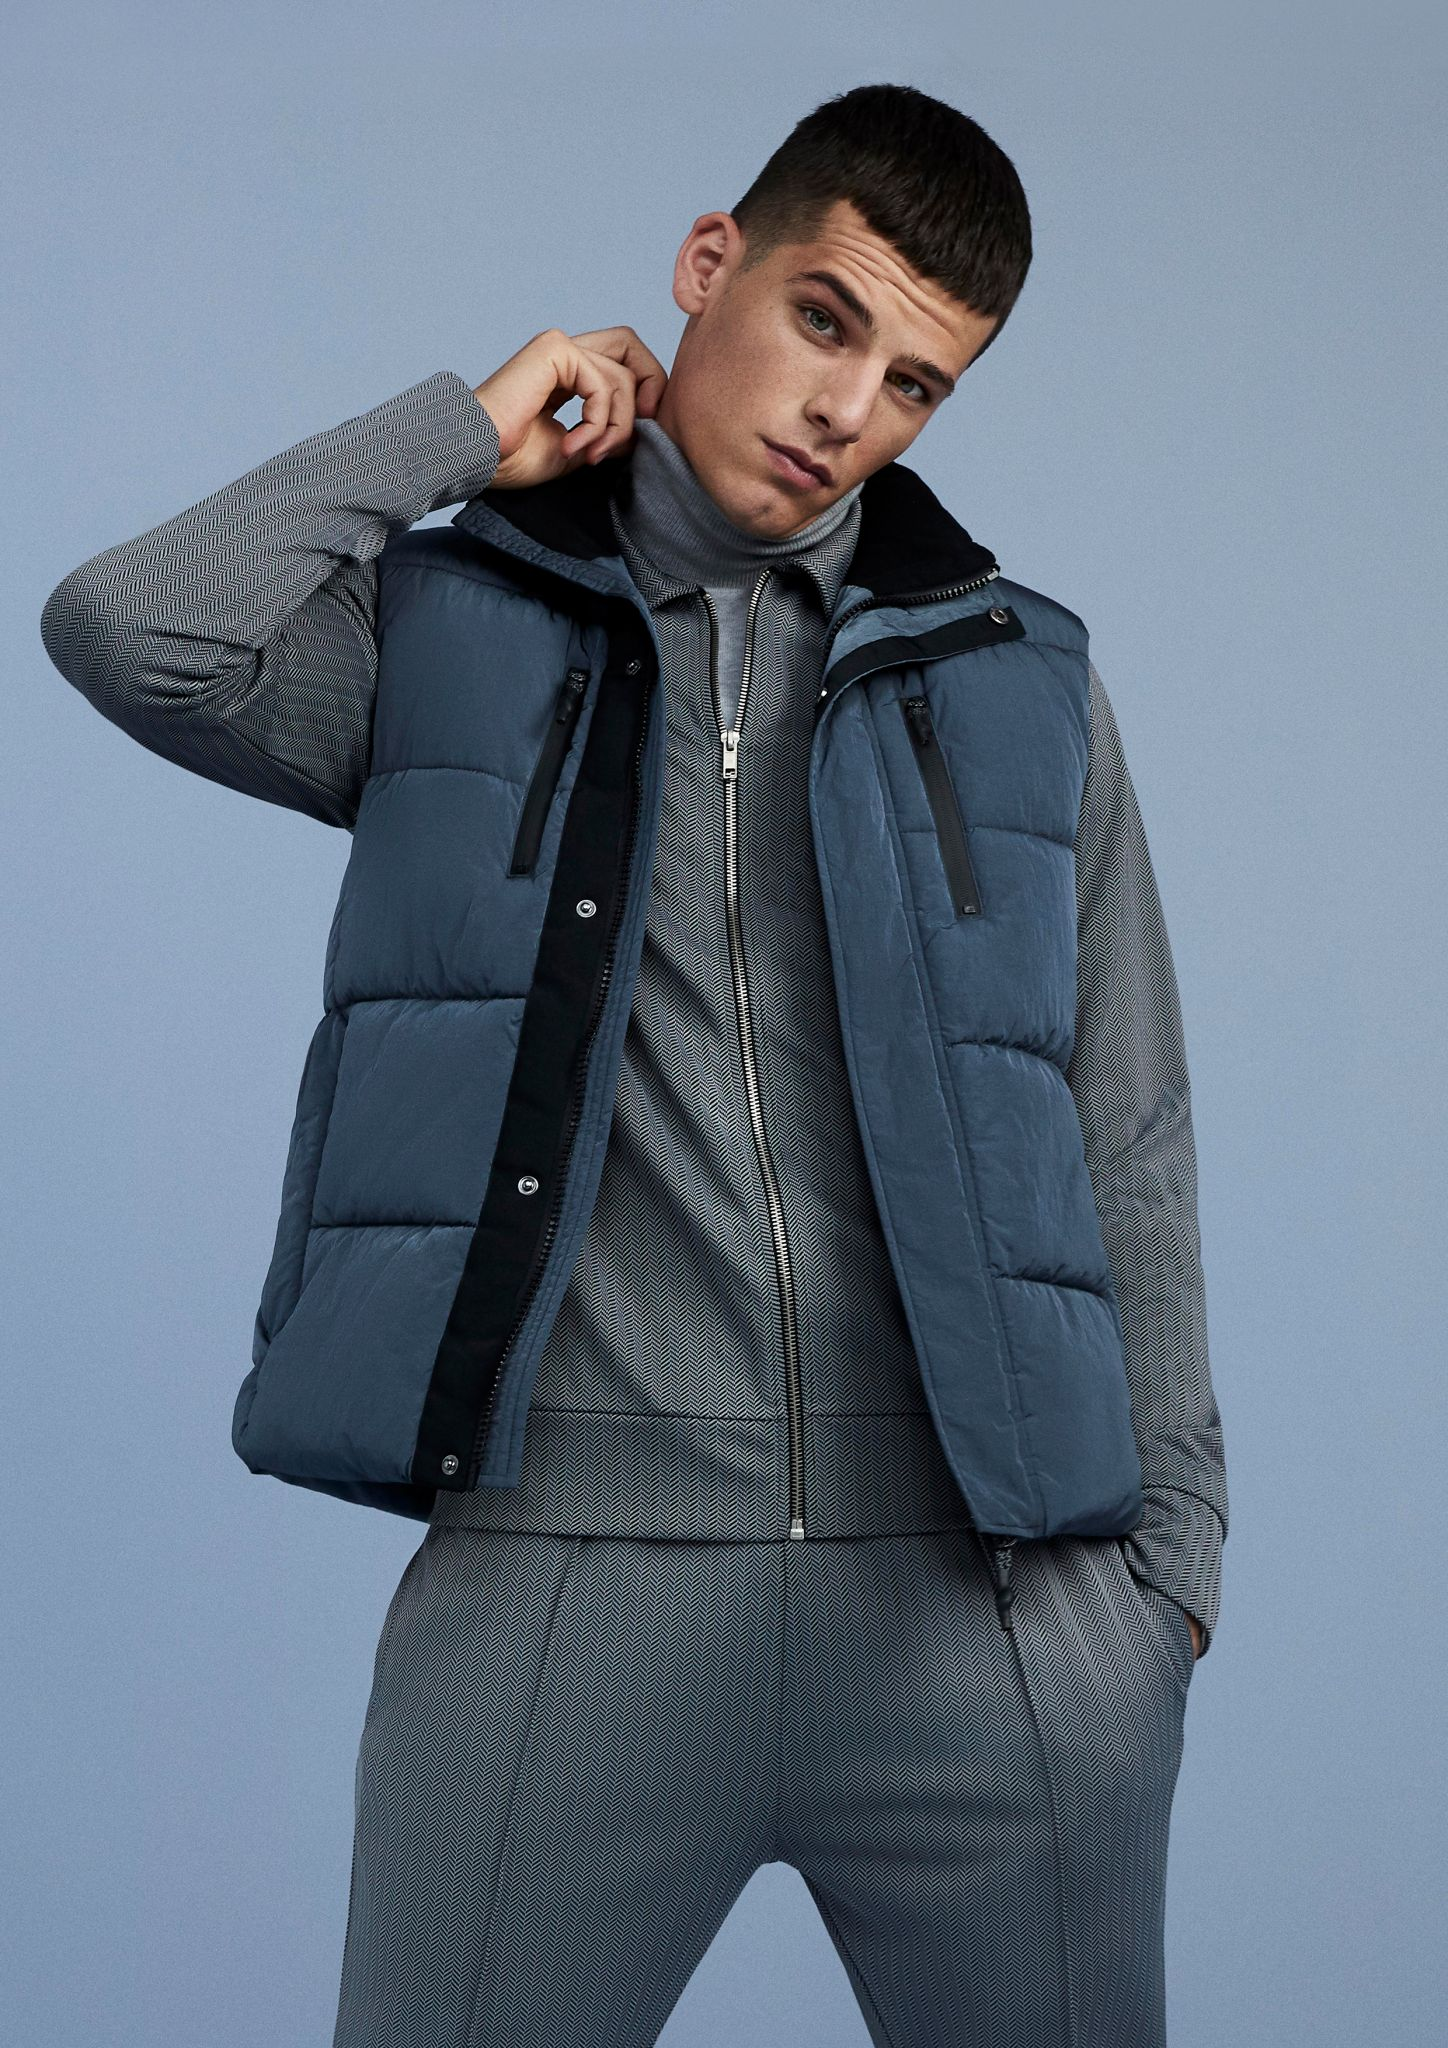 Male model wearing a tracksuit and a gilet jacket from River Island's new autumn collection